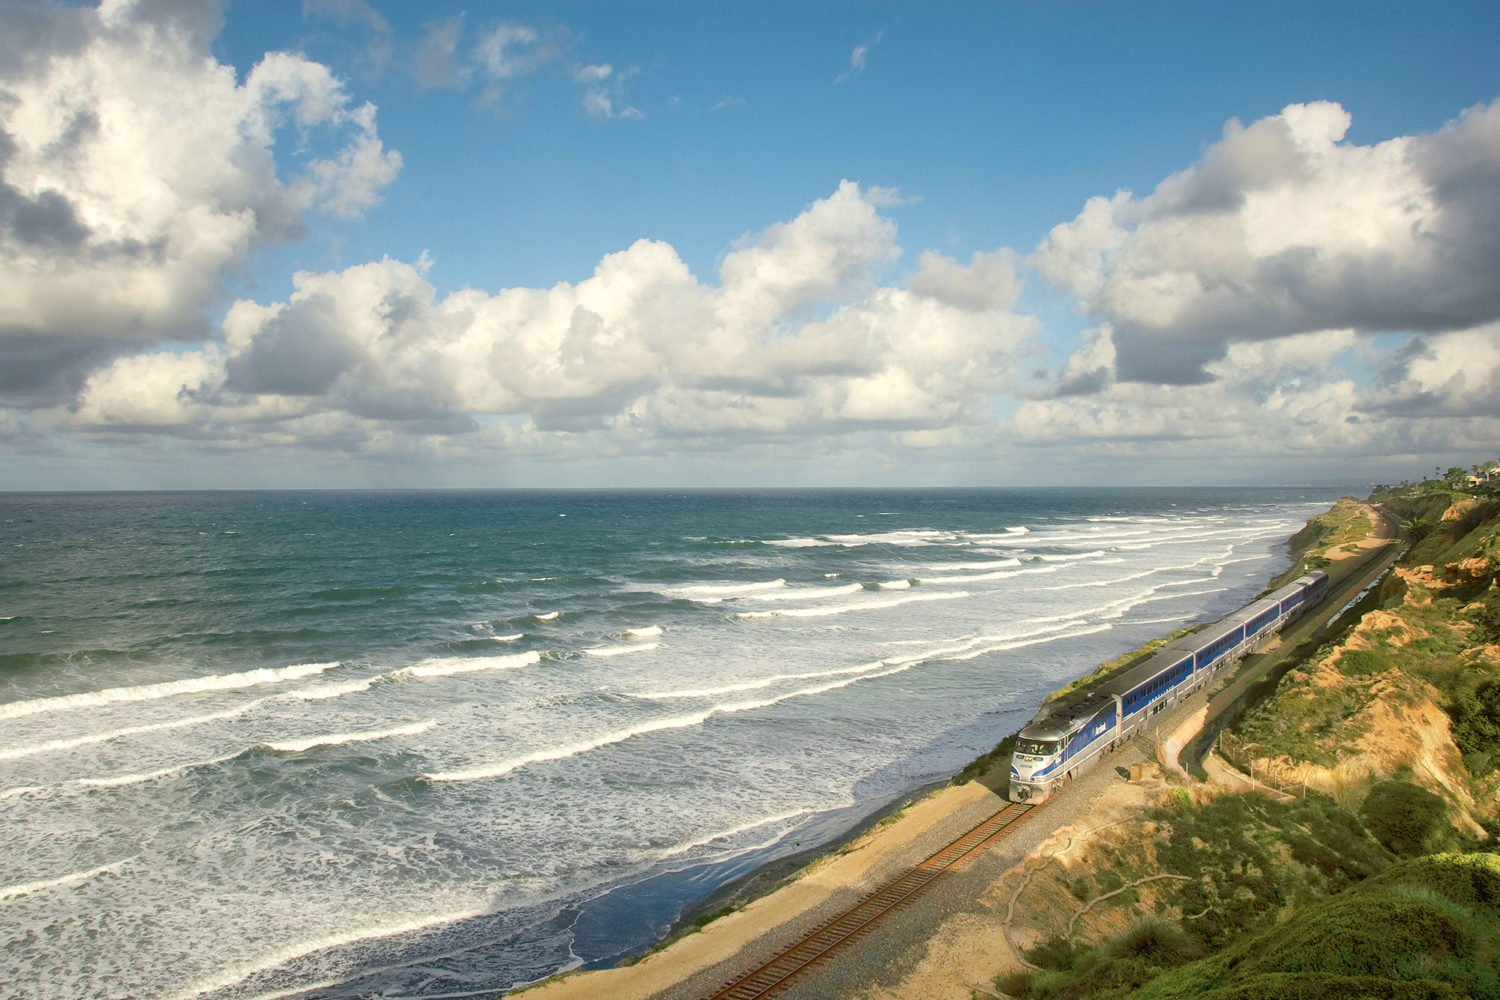 The Pacific Surfliner is just one of Amtrak's many scenic routes. Read on for more reasons to ride the rails. Photograph by Yury Miller/Alamy.